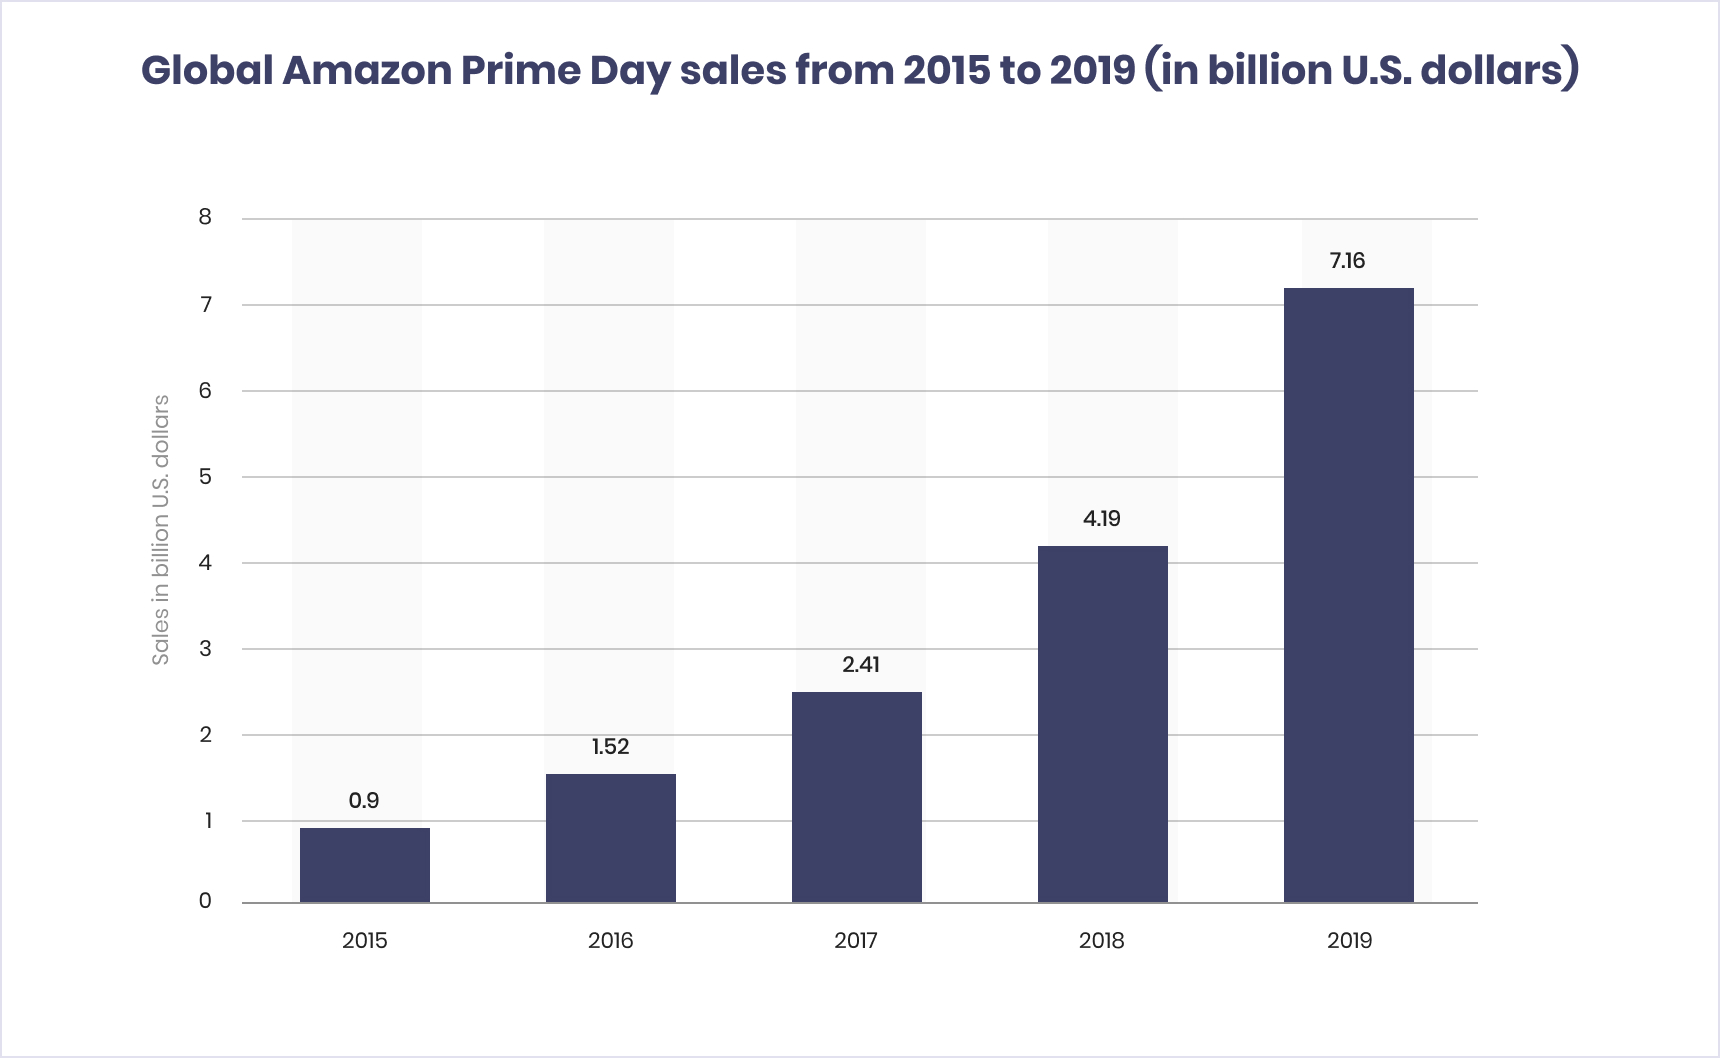 Amazon's Prime Day sales